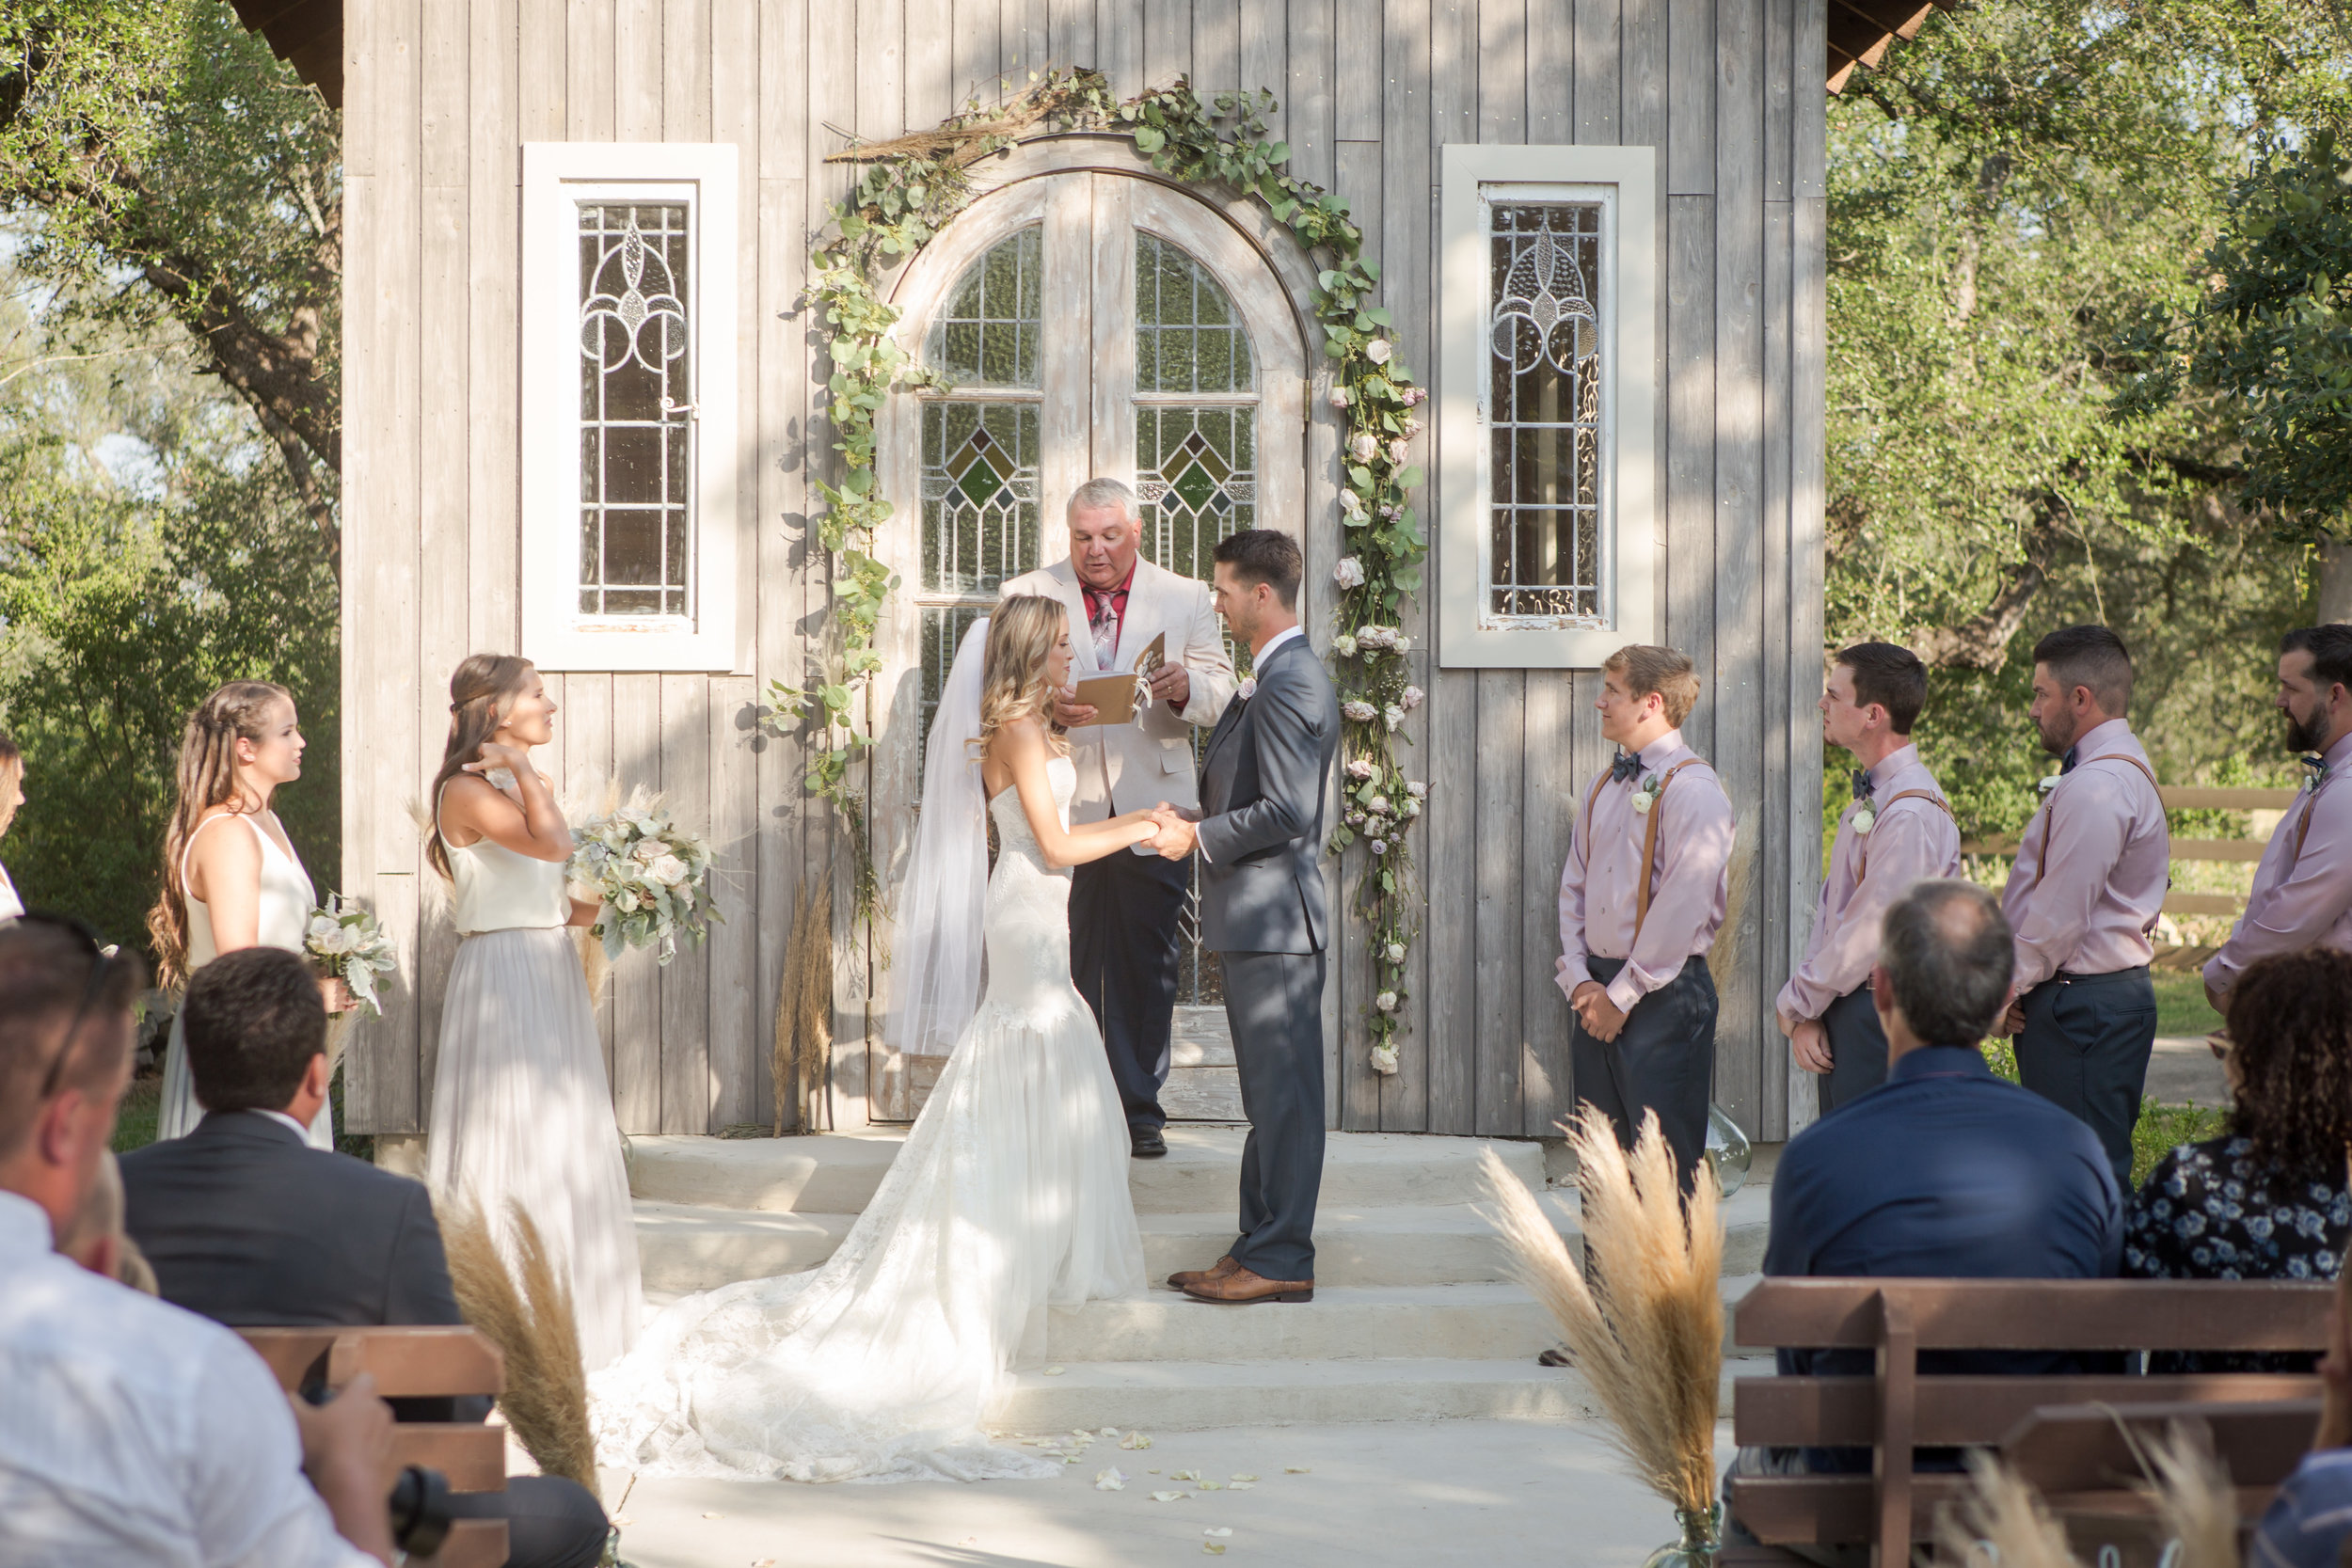 An outdoor wedding ceremony at a small countryside chapel.